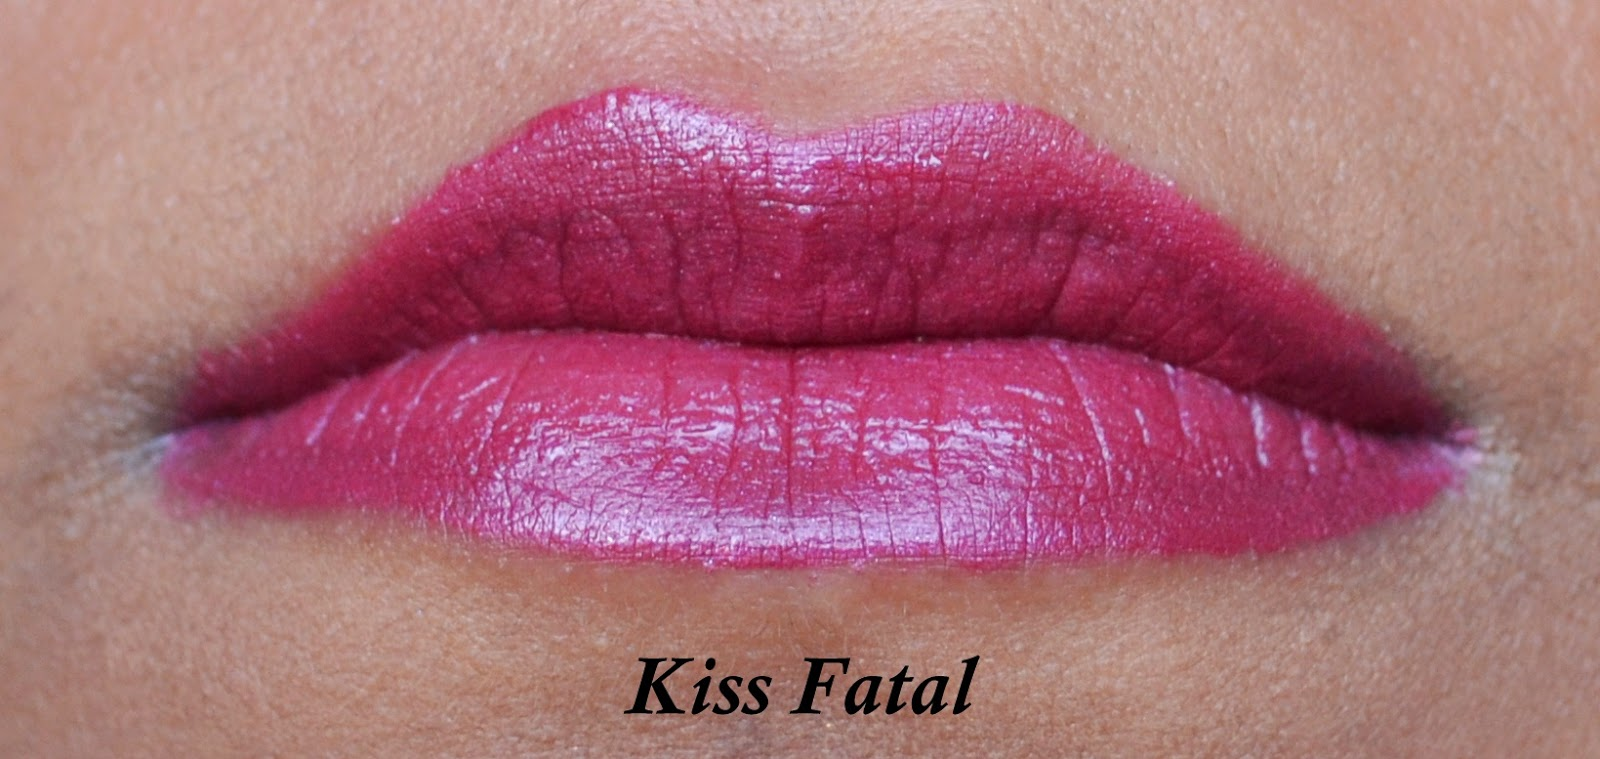 Rimmel Provocalips 16hr Kissproof Lip Colour in Kiss Fatal Swatch - Aspiring Londoner